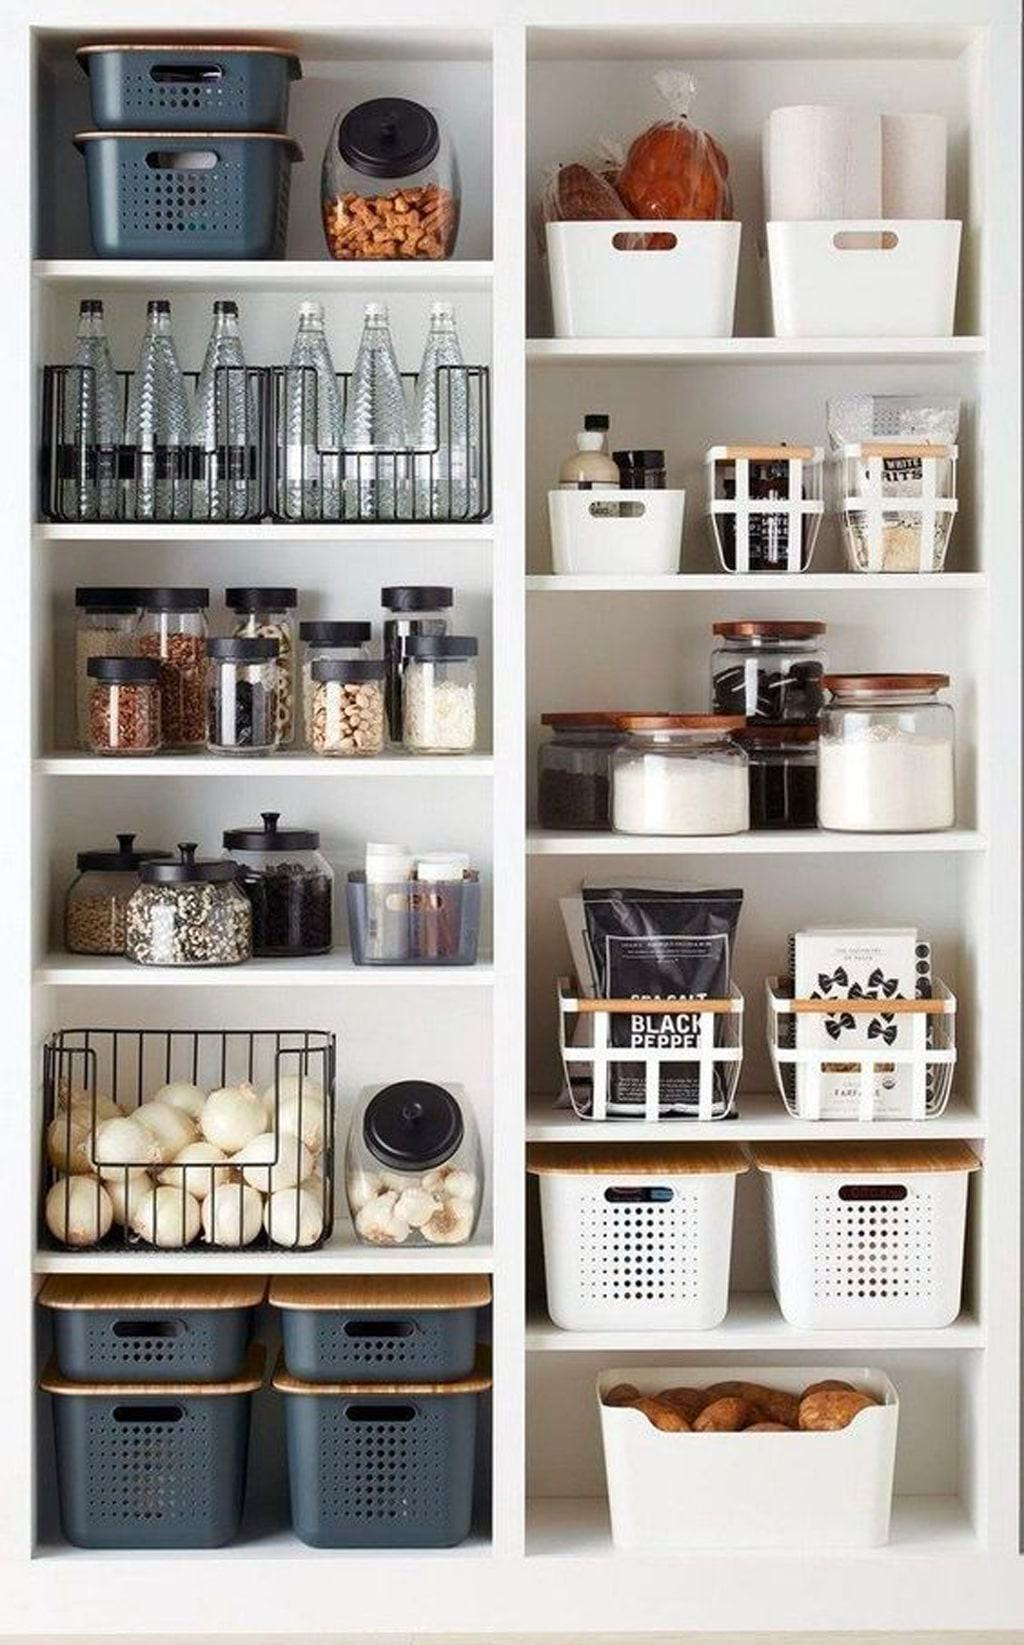 January Declutter Challenge 2021. Start the new year off by cleaning and decluttering your whole house in ONE month!